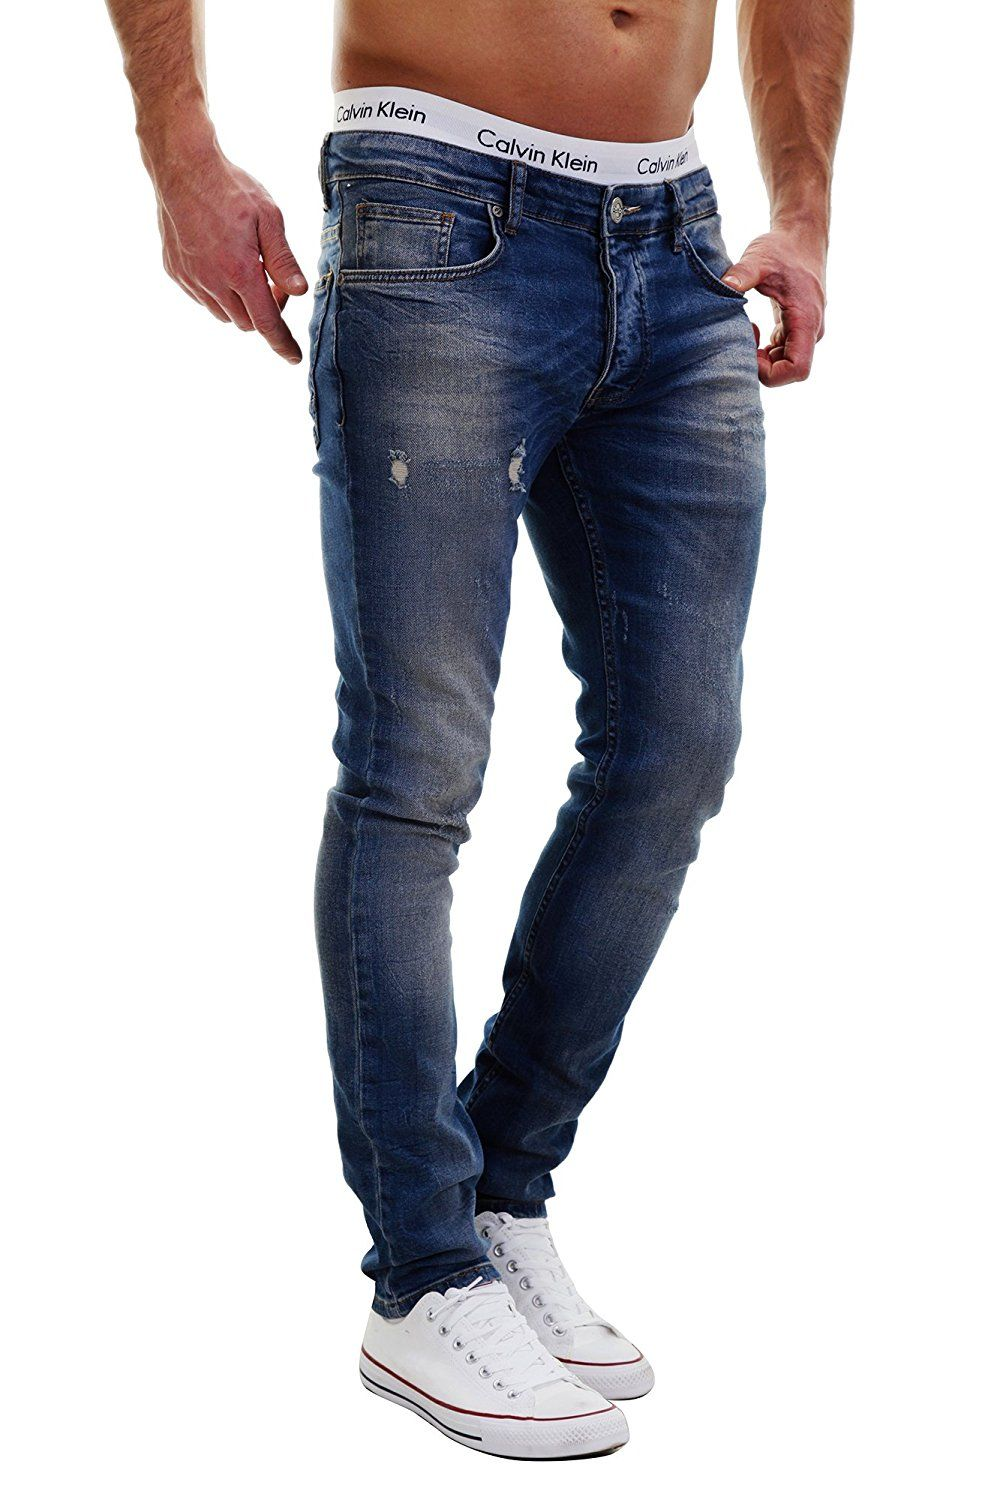 Merish Jeans Herren destroyed Used Look Hard Bleached Dark